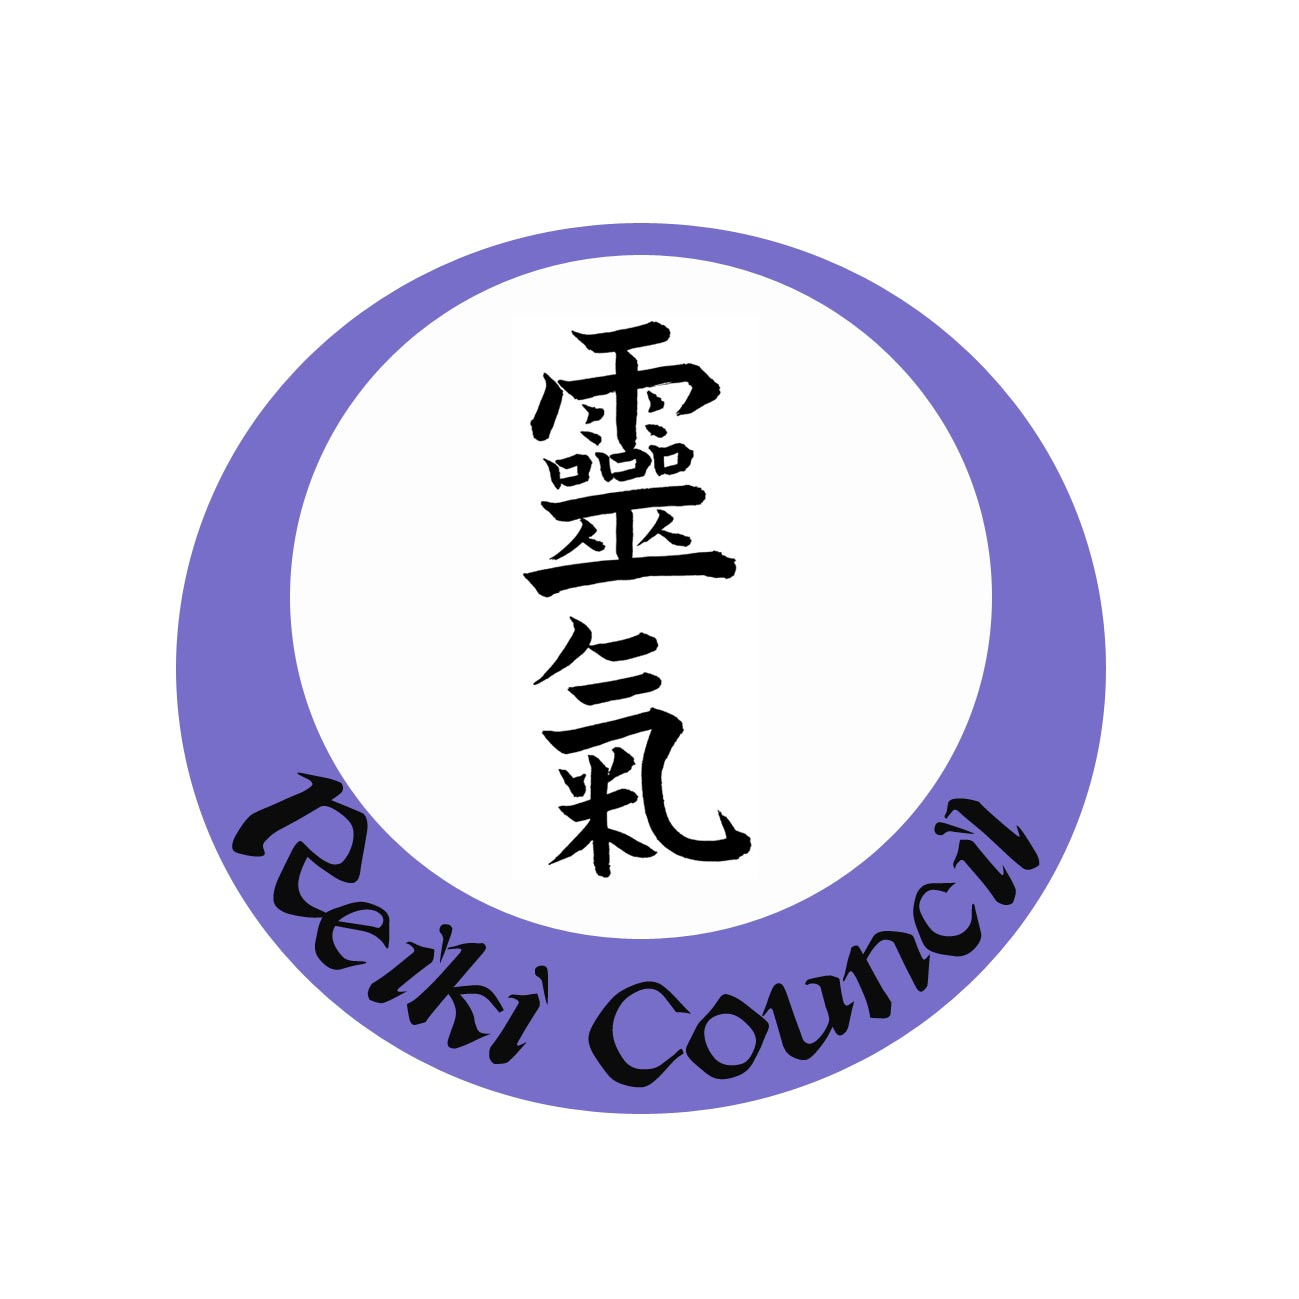 Ther Reiki Connection founder member of the Reiki Council